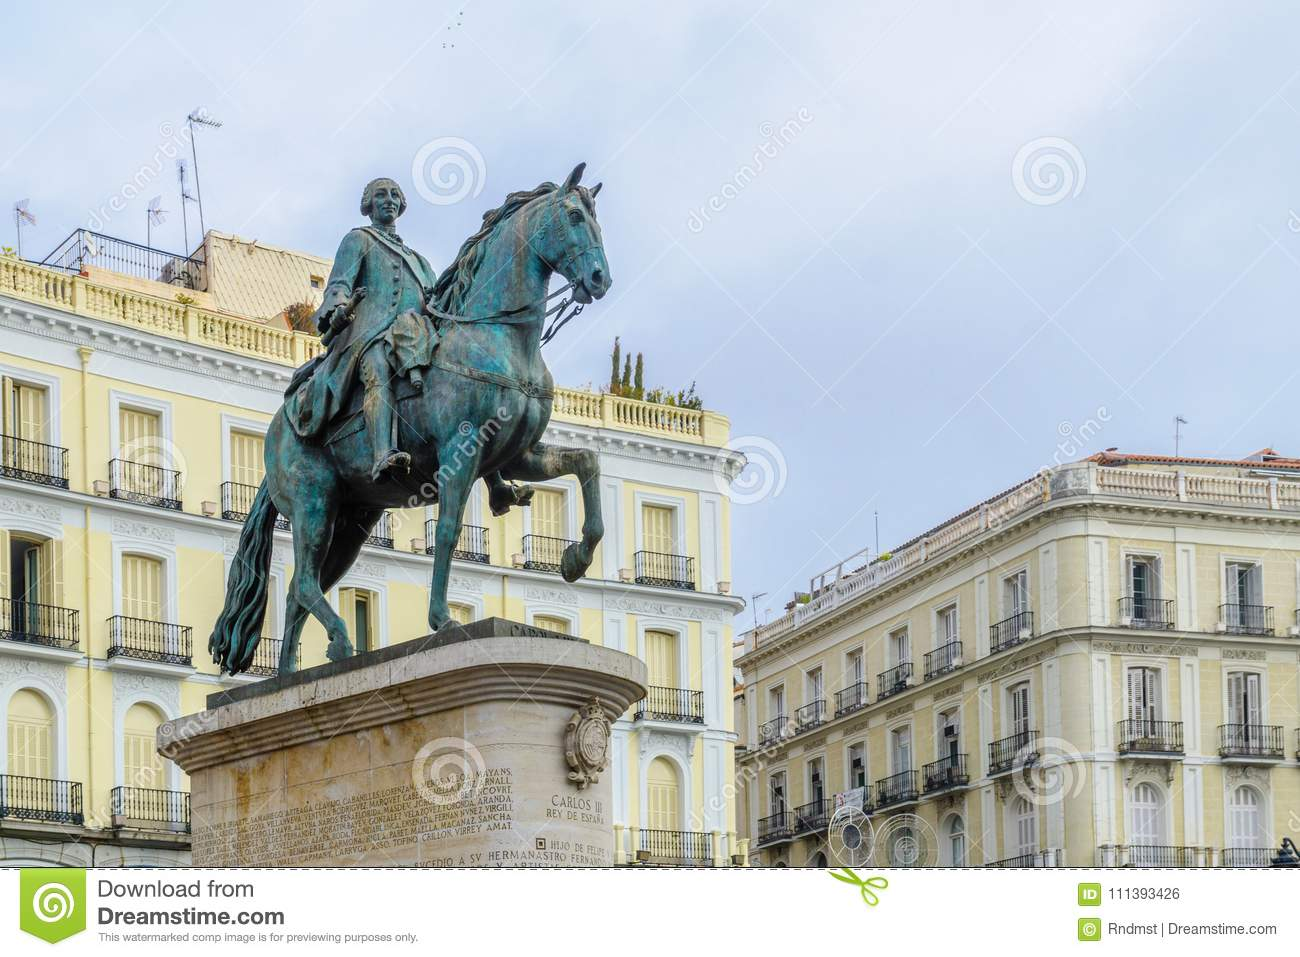 Monumento a rey Charles III, Puerta del Sol, Madrid